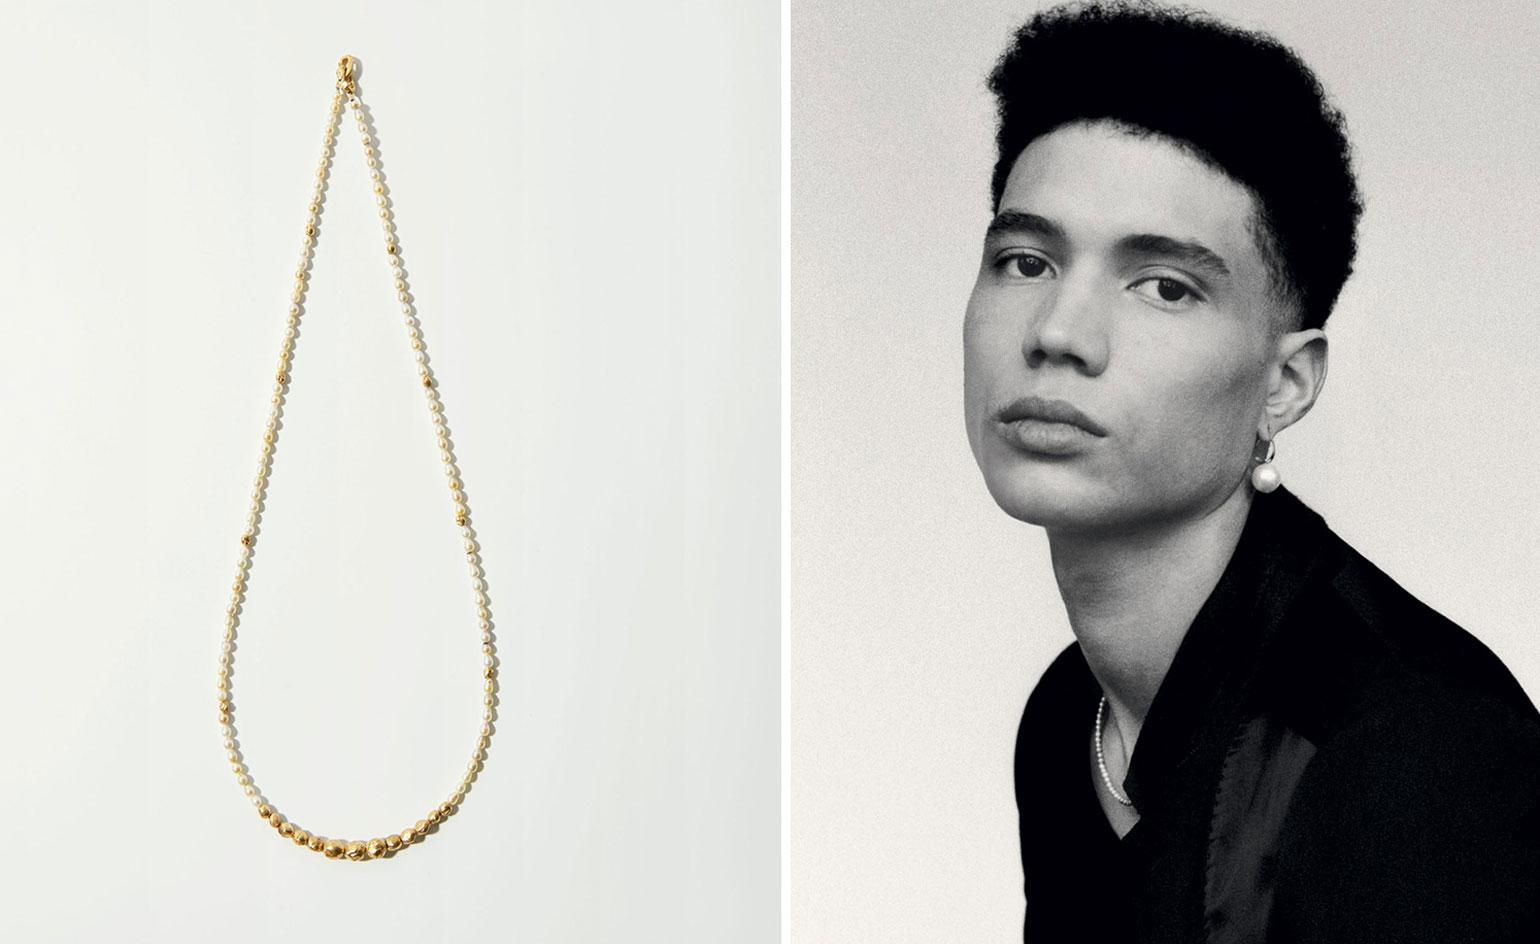 Renaissance man: designers are seeing pearls in a whole new light